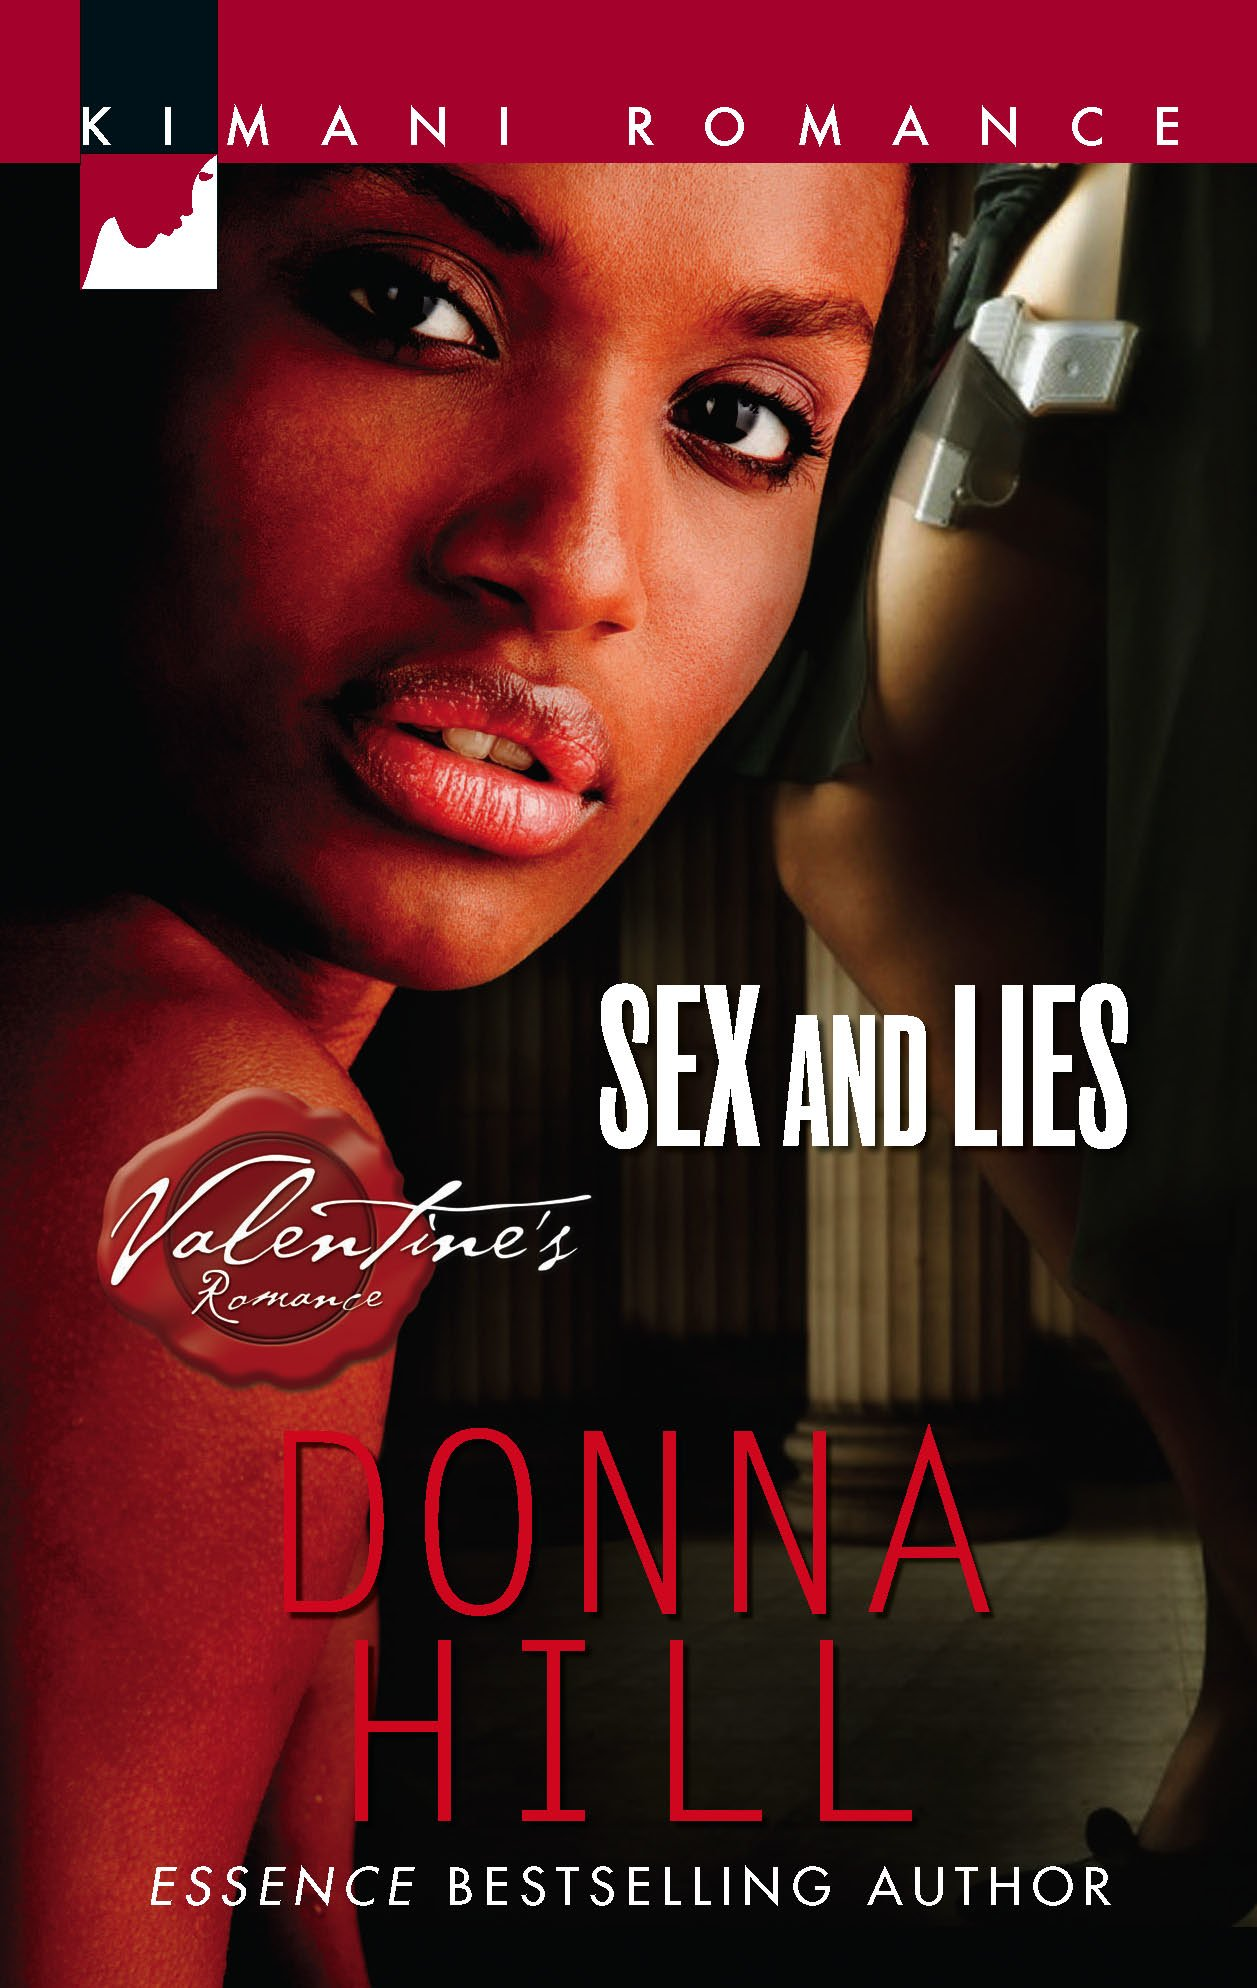 Sex and Lies (Kimani Romance): Donna Hill: 9780373860524 ...